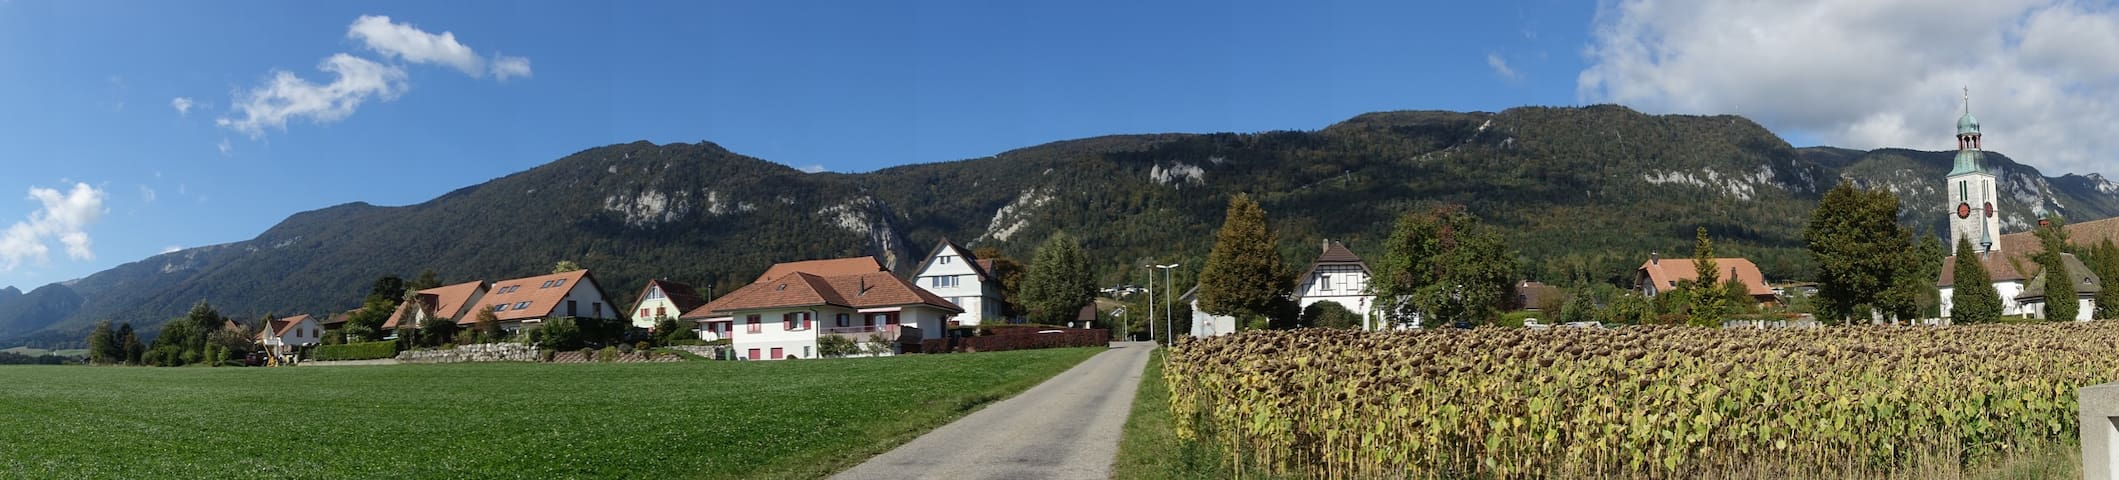 Swiss village apartment with breathtaking views - Oberdorf - Apartamento